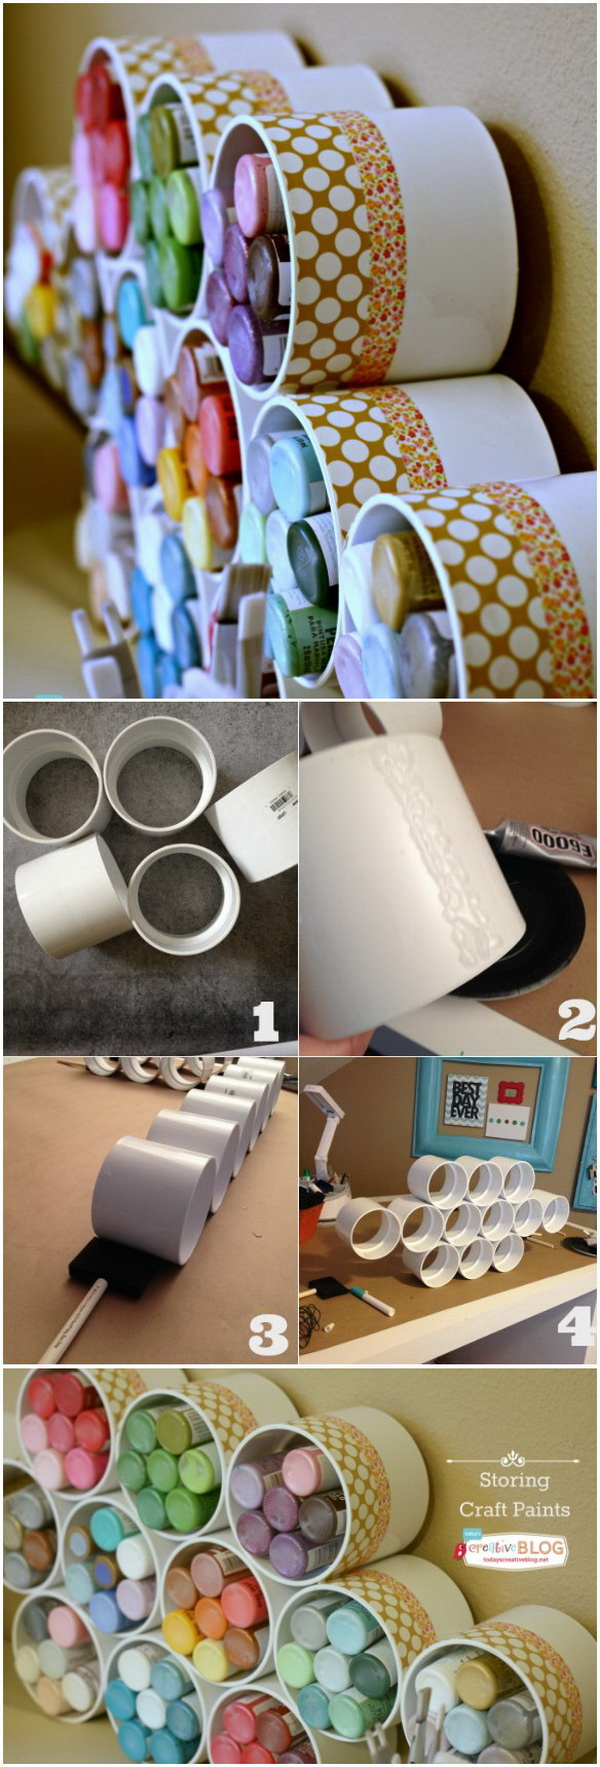 Craft room organization storage ideas for creative juice for Craft supplies organization ideas